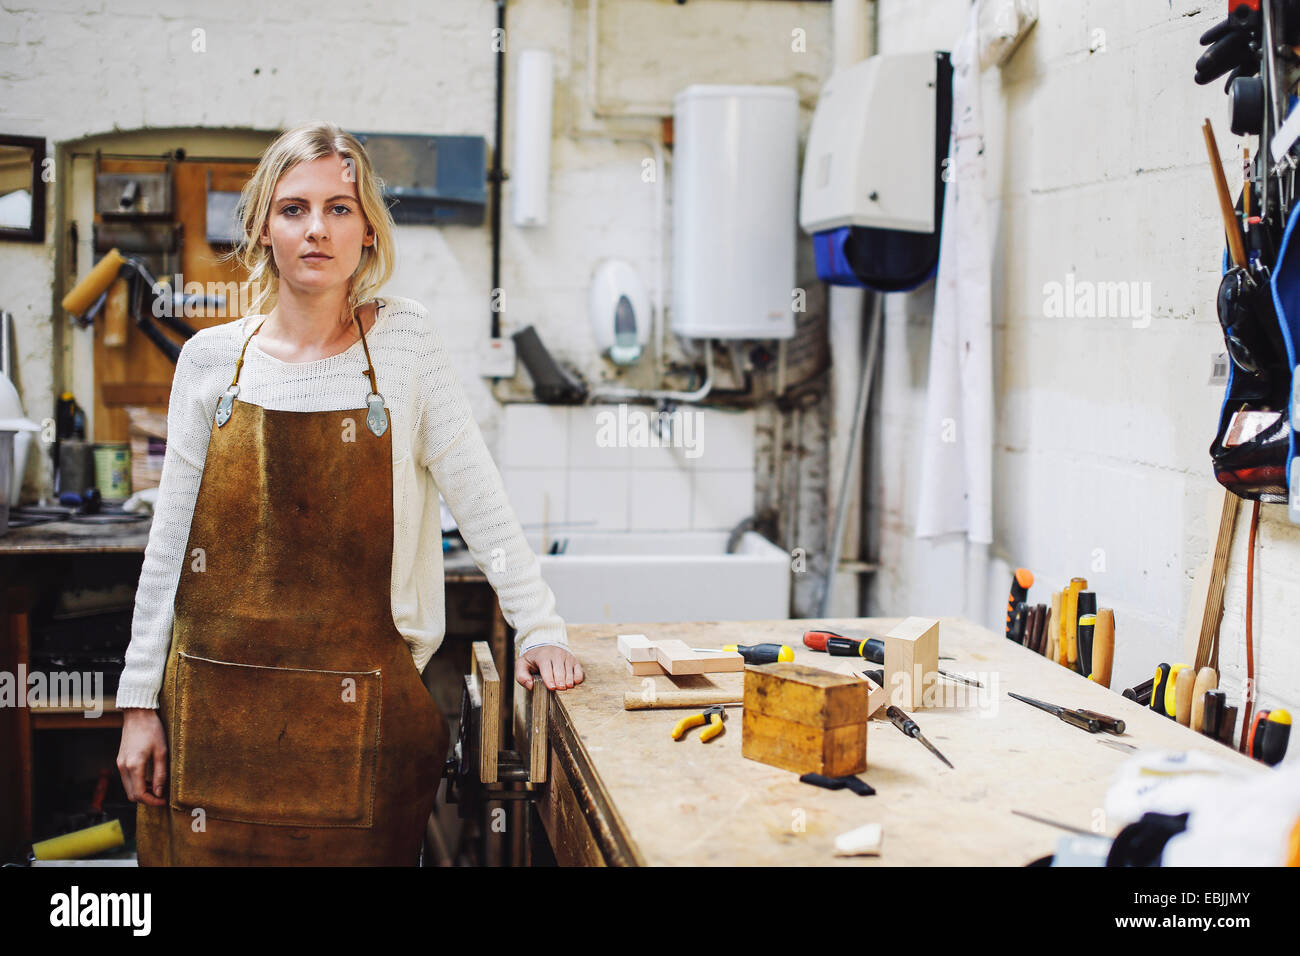 Portrait of young craftswoman leaning on workbench in organ workshop - Stock Image